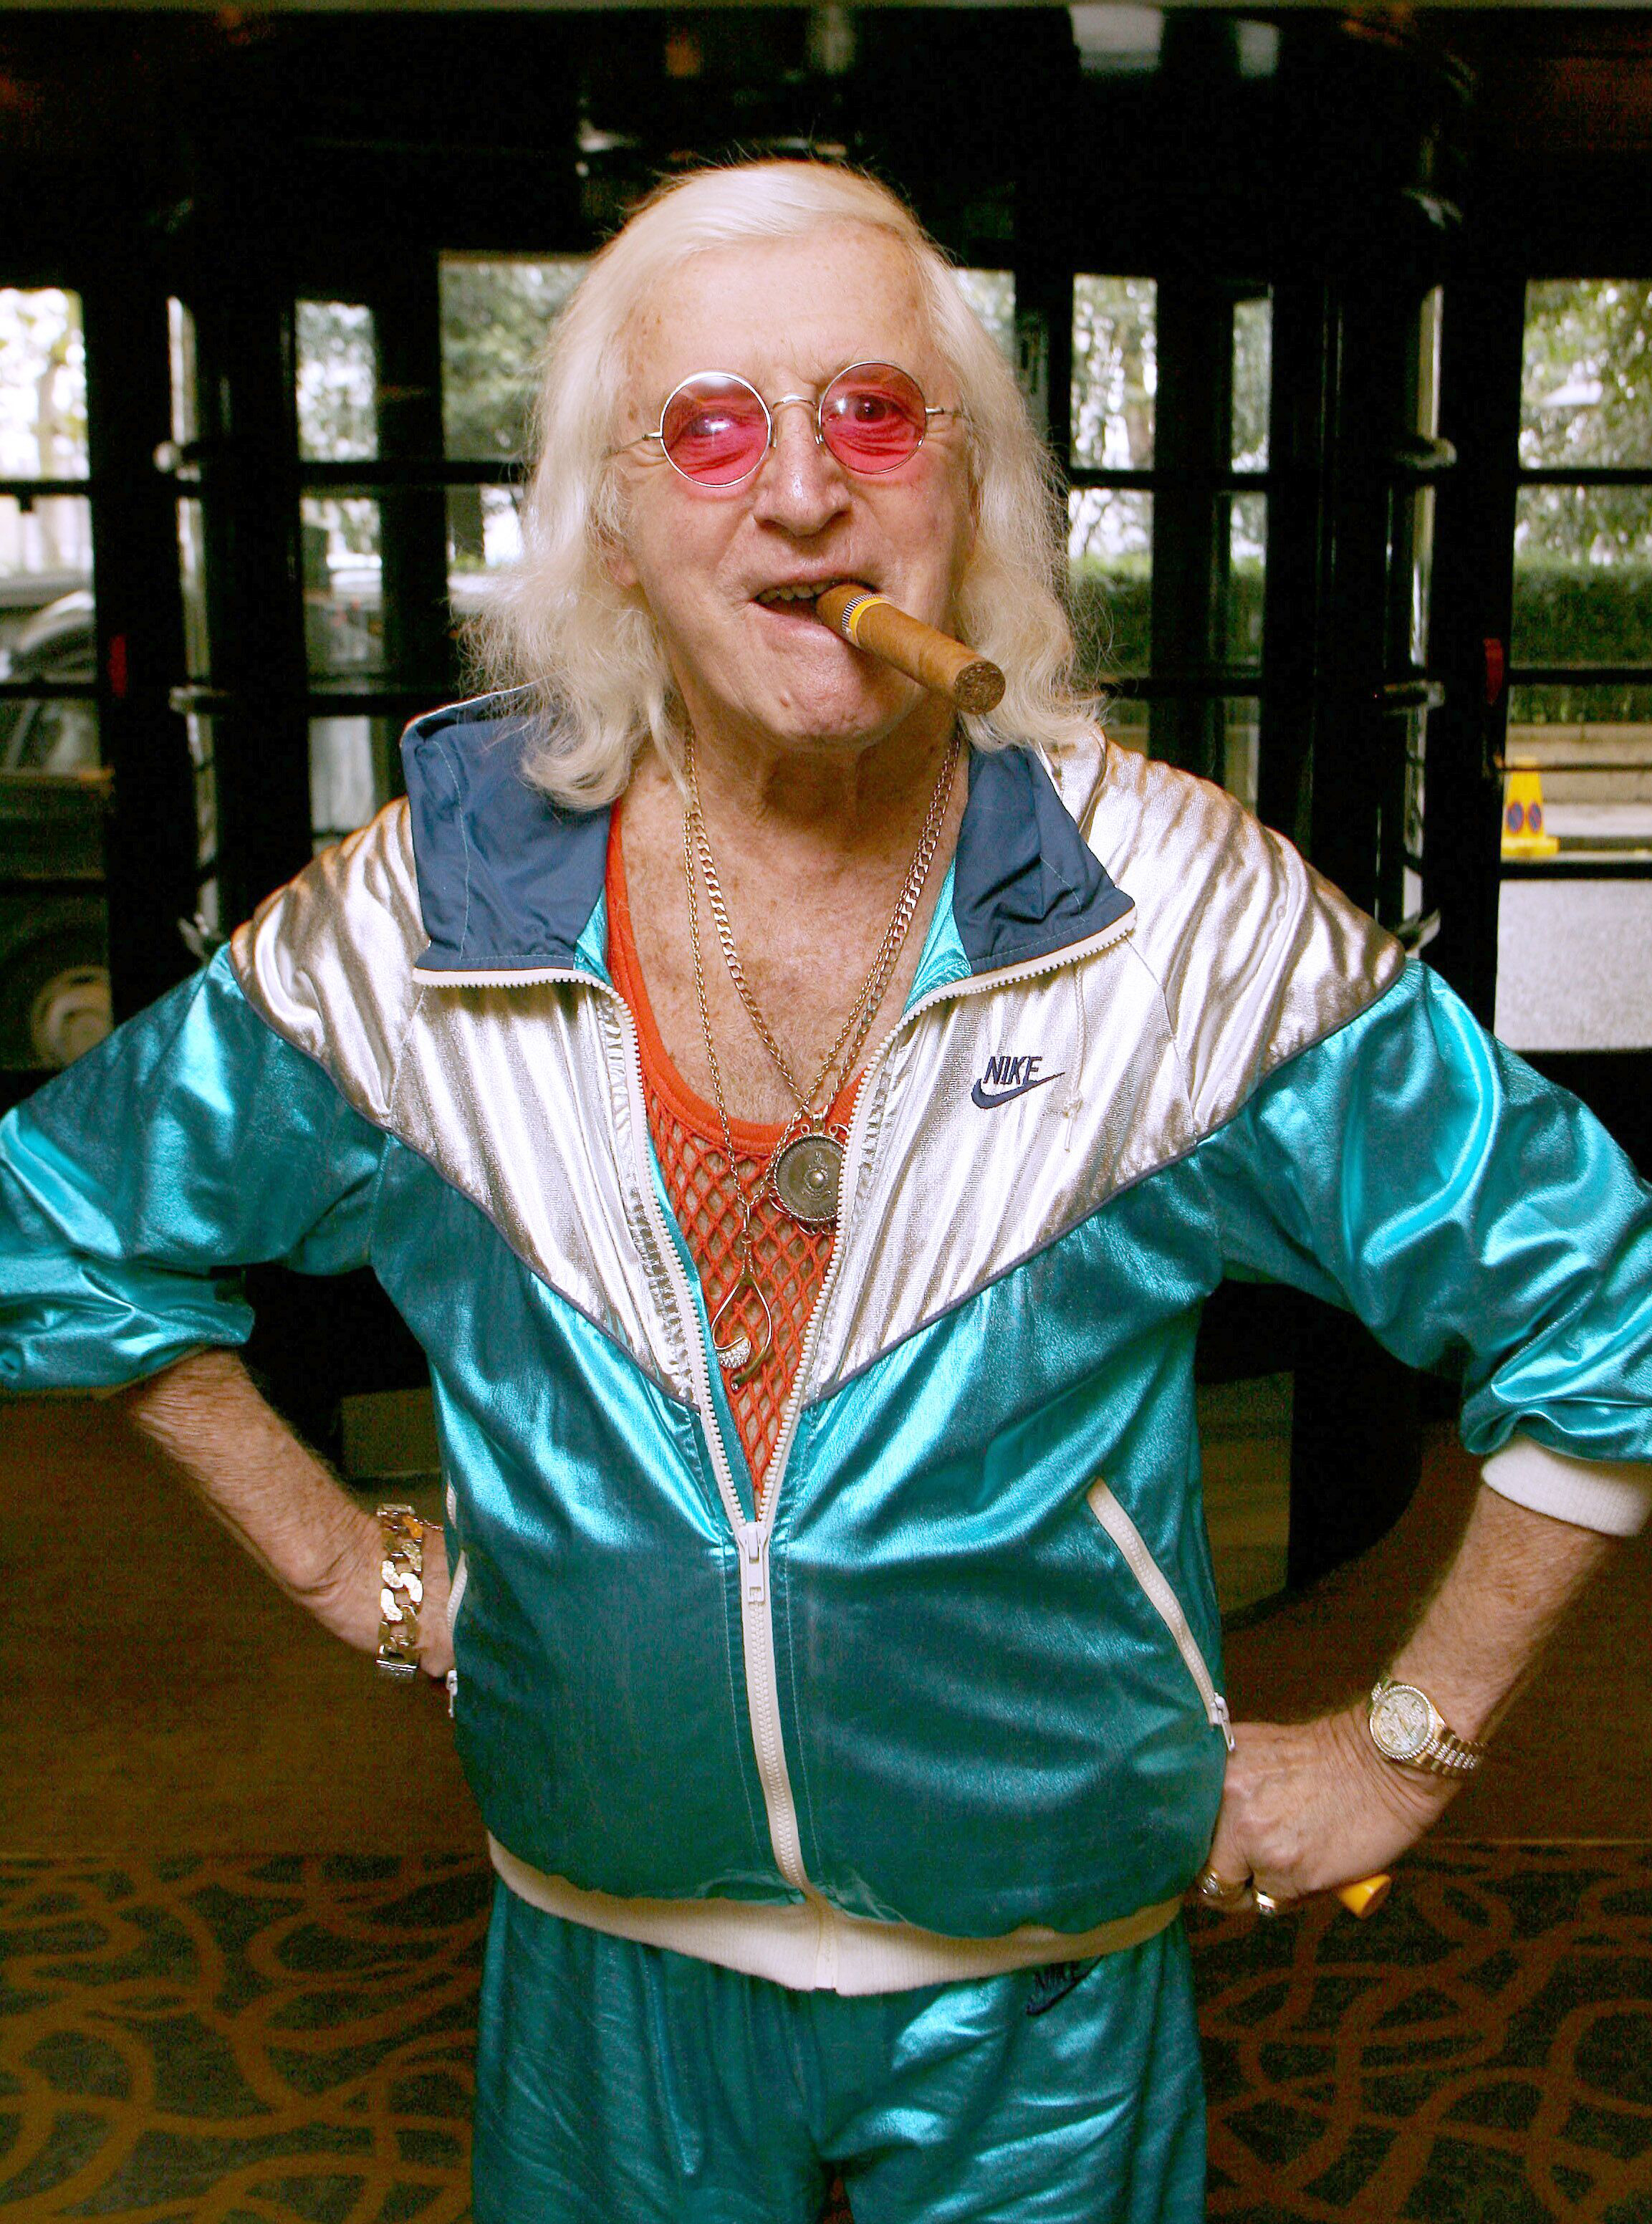 If bill cosby was america's lovable dad, then savile was the kooky uncle across the pond in england. Late Sir Jimmy Savile accused of grooming and sexually ...